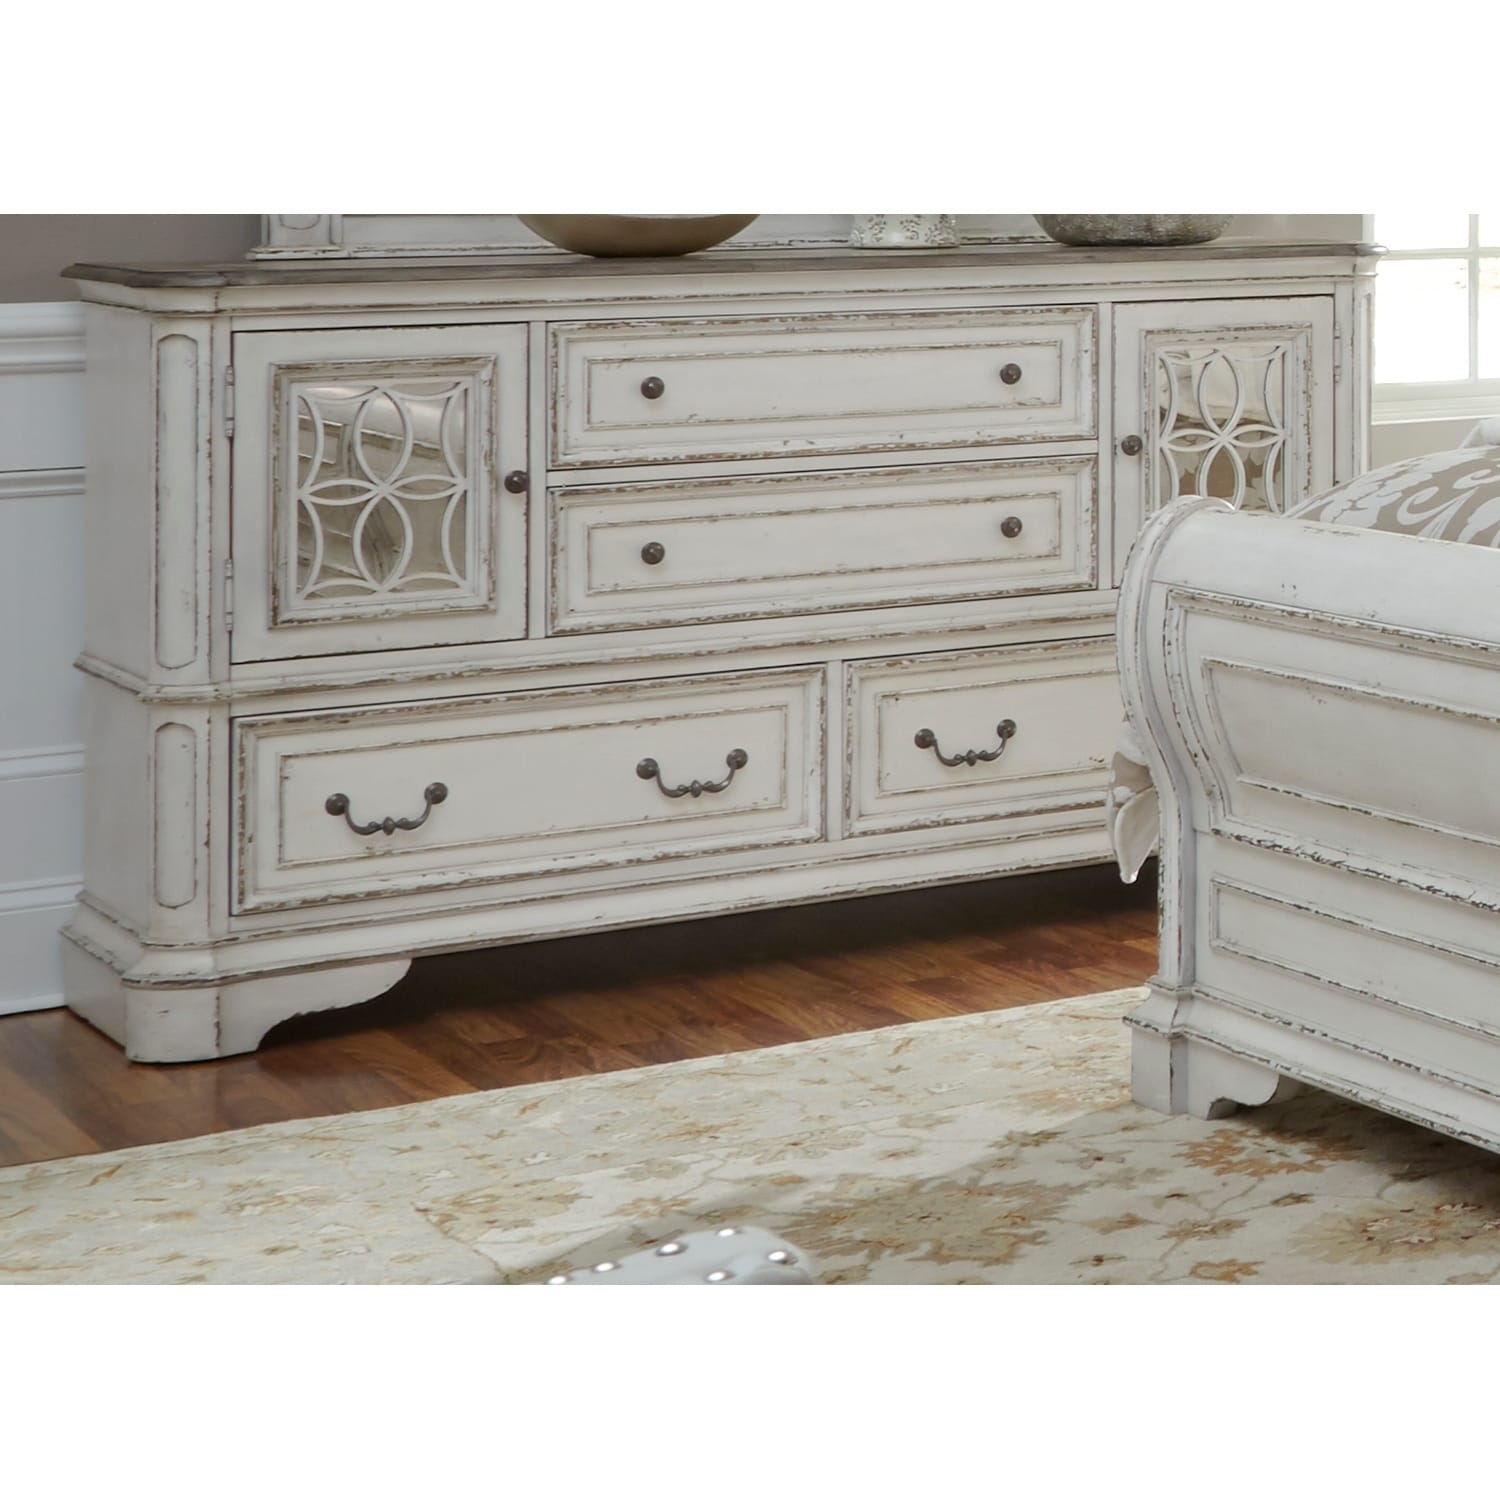 Shop Magnolia Manor Antique White 2 Door 4 Drawer Dresser And Arch Mirror  Set   On Sale   Free Shipping Today   Overstock.com   17305883